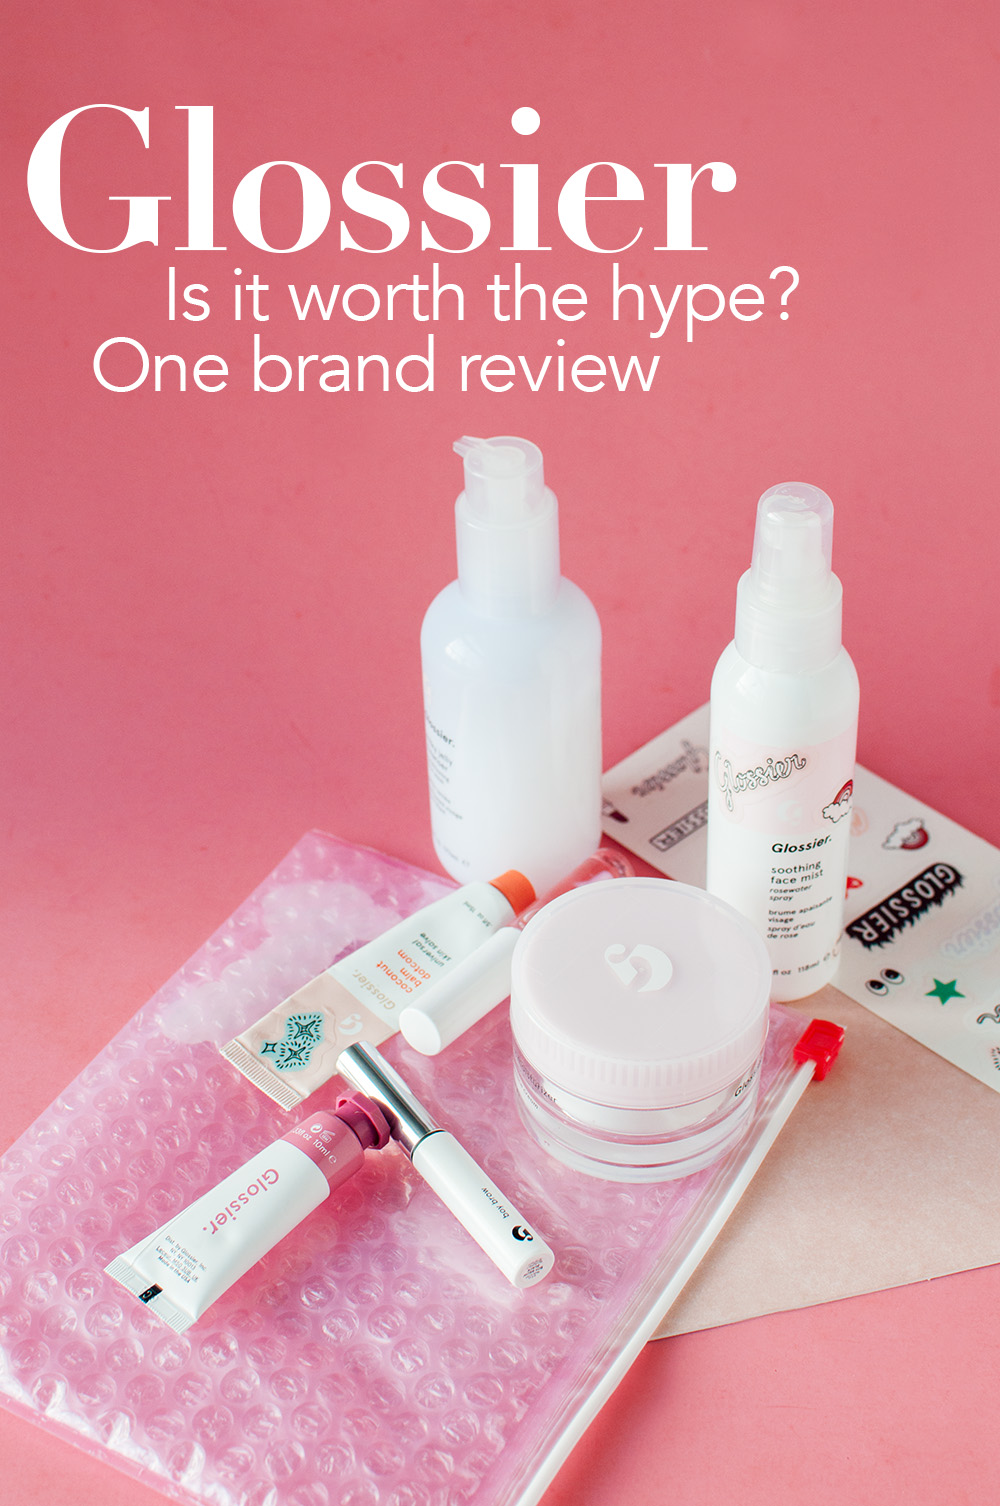 glossier review, glossier worth the hype, glossier one brand review, glossier review